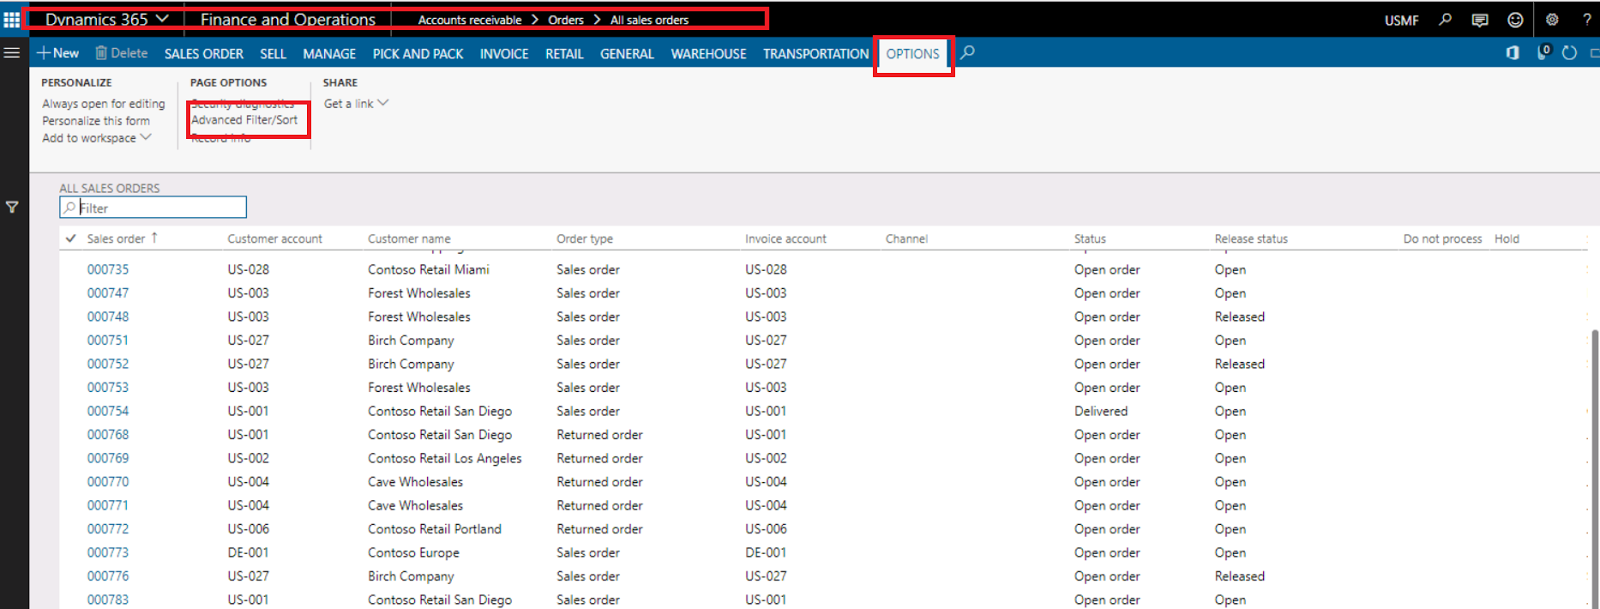 How to save filters as a fast inquires in Dynamics 365